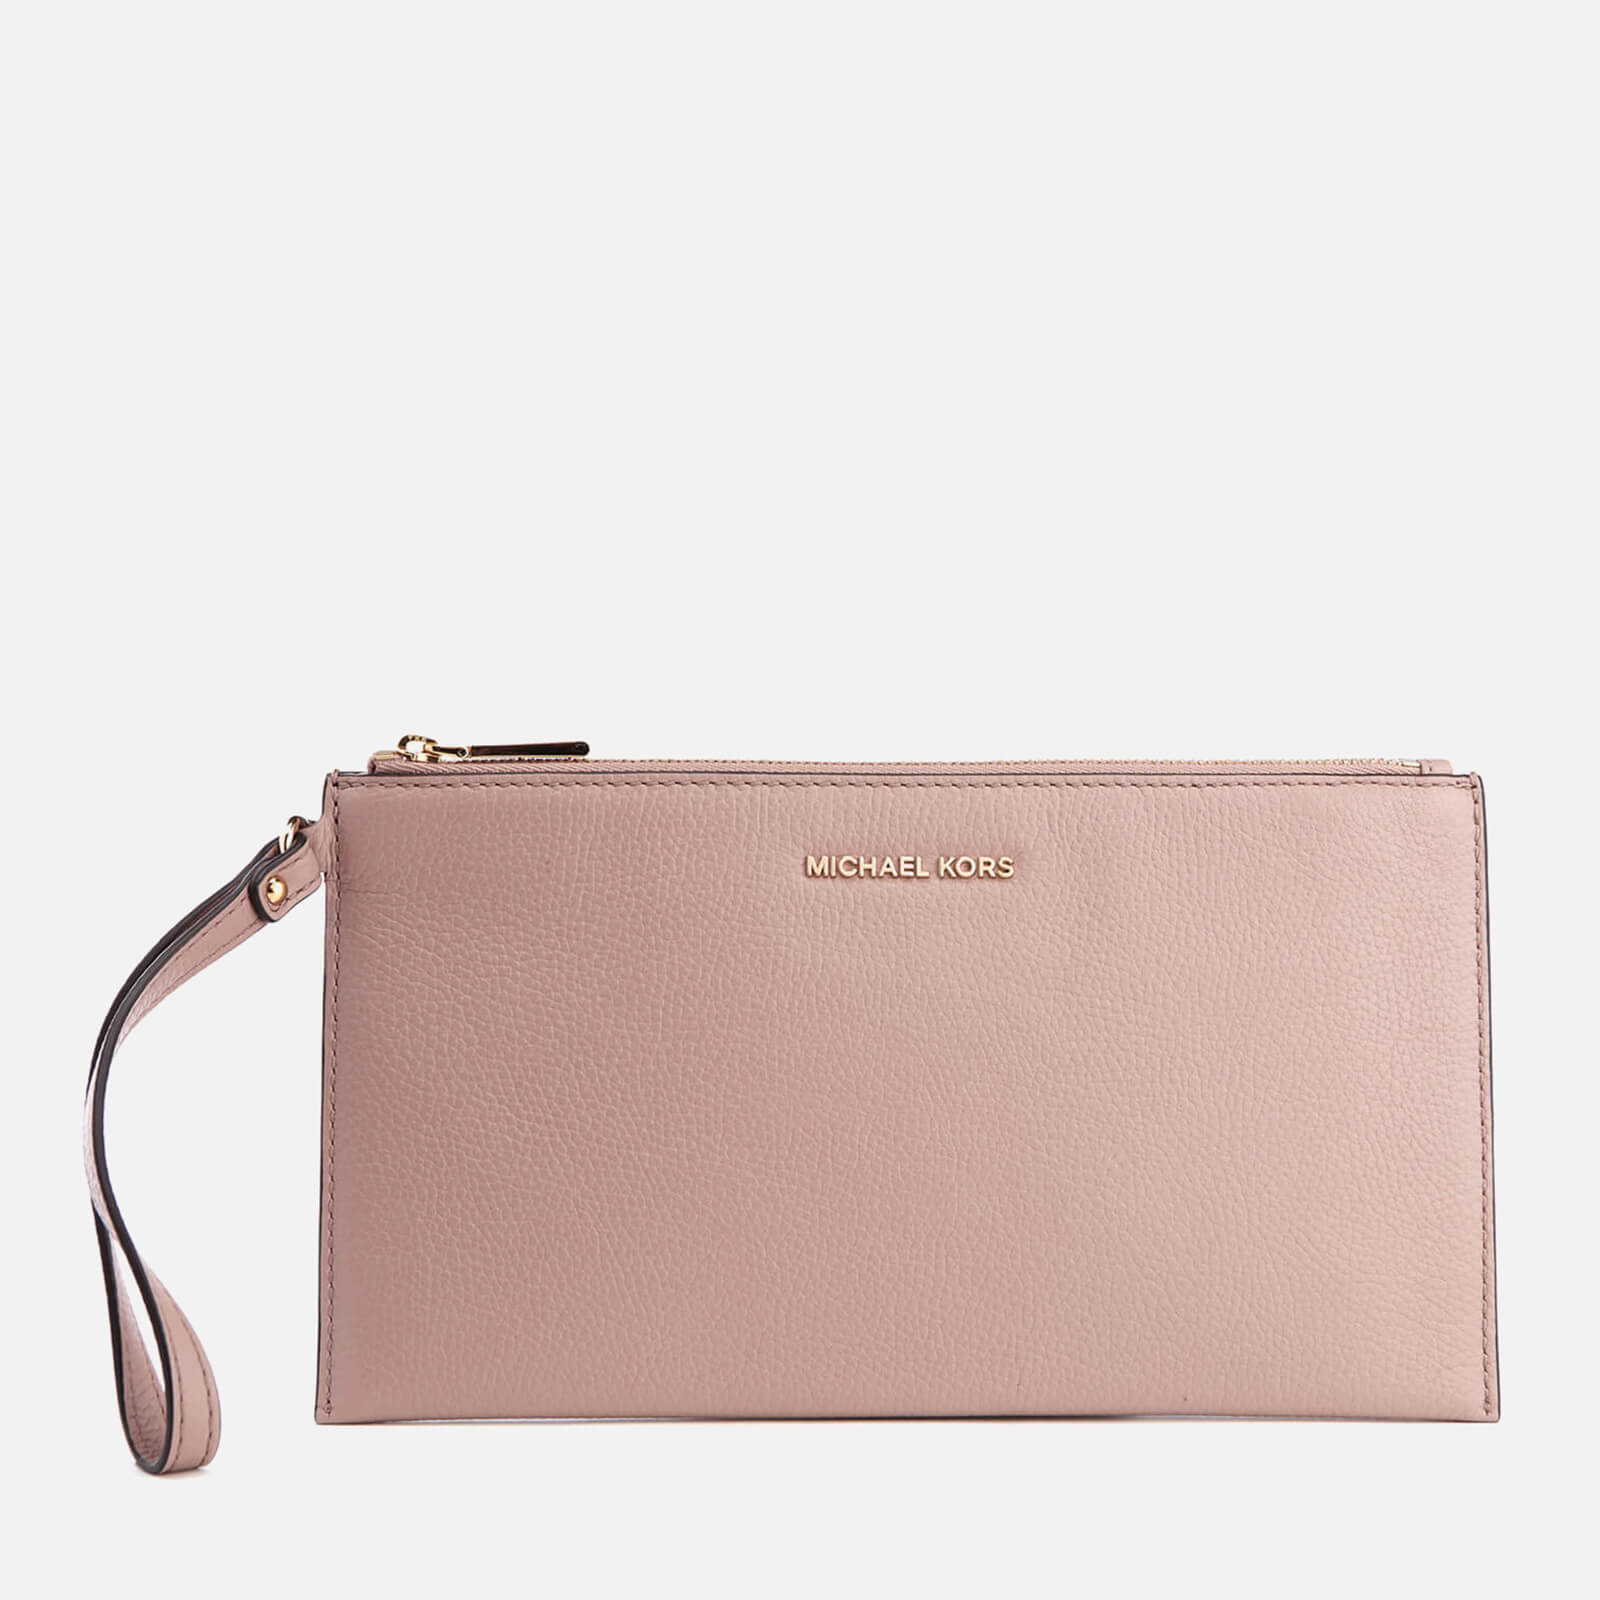 a89b8e113f5a32 MICHAEL MICHAEL KORS Women's Mercer Zip Clutch Bag - Fawn - Free UK  Delivery over £50